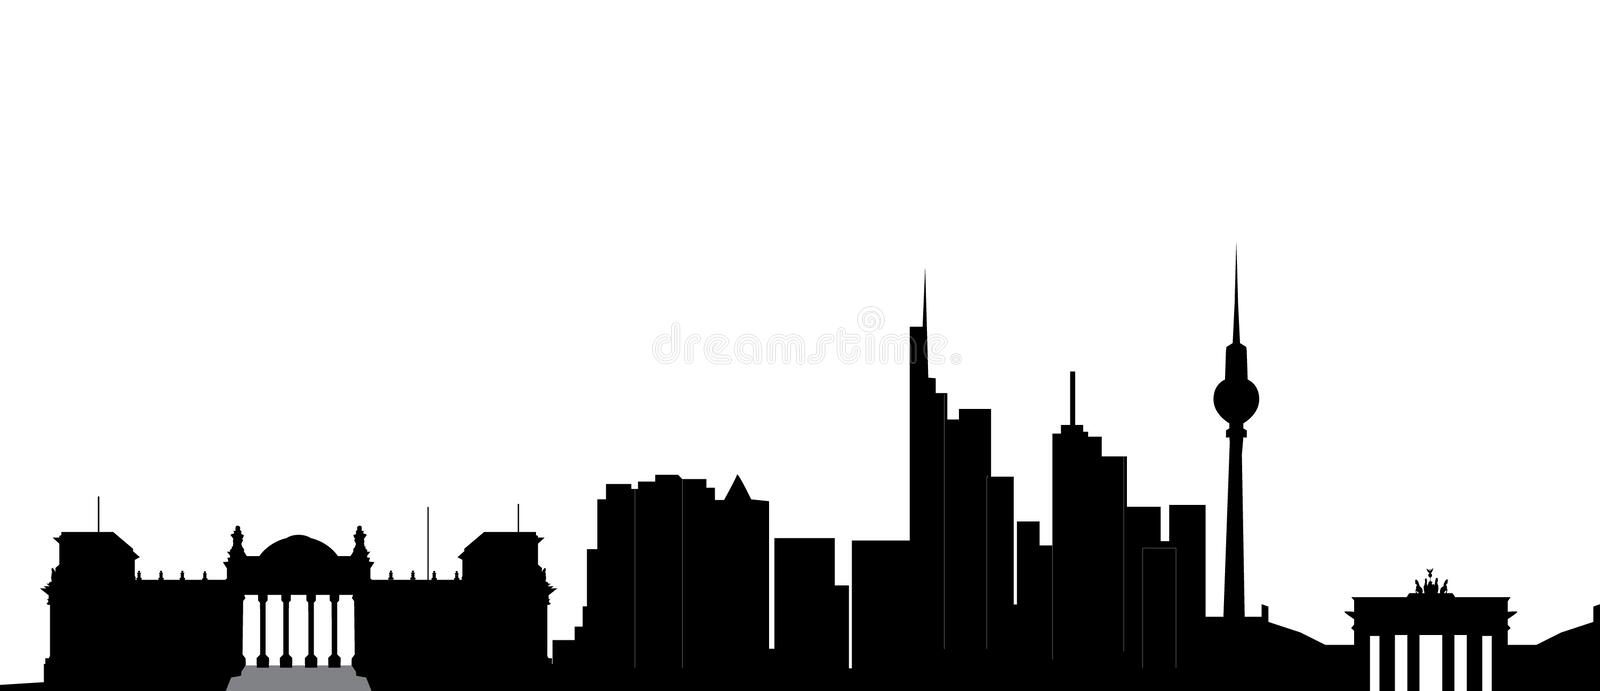 Berlin. Skyline of the city with the tv tower and brandenburger tor stock illustration